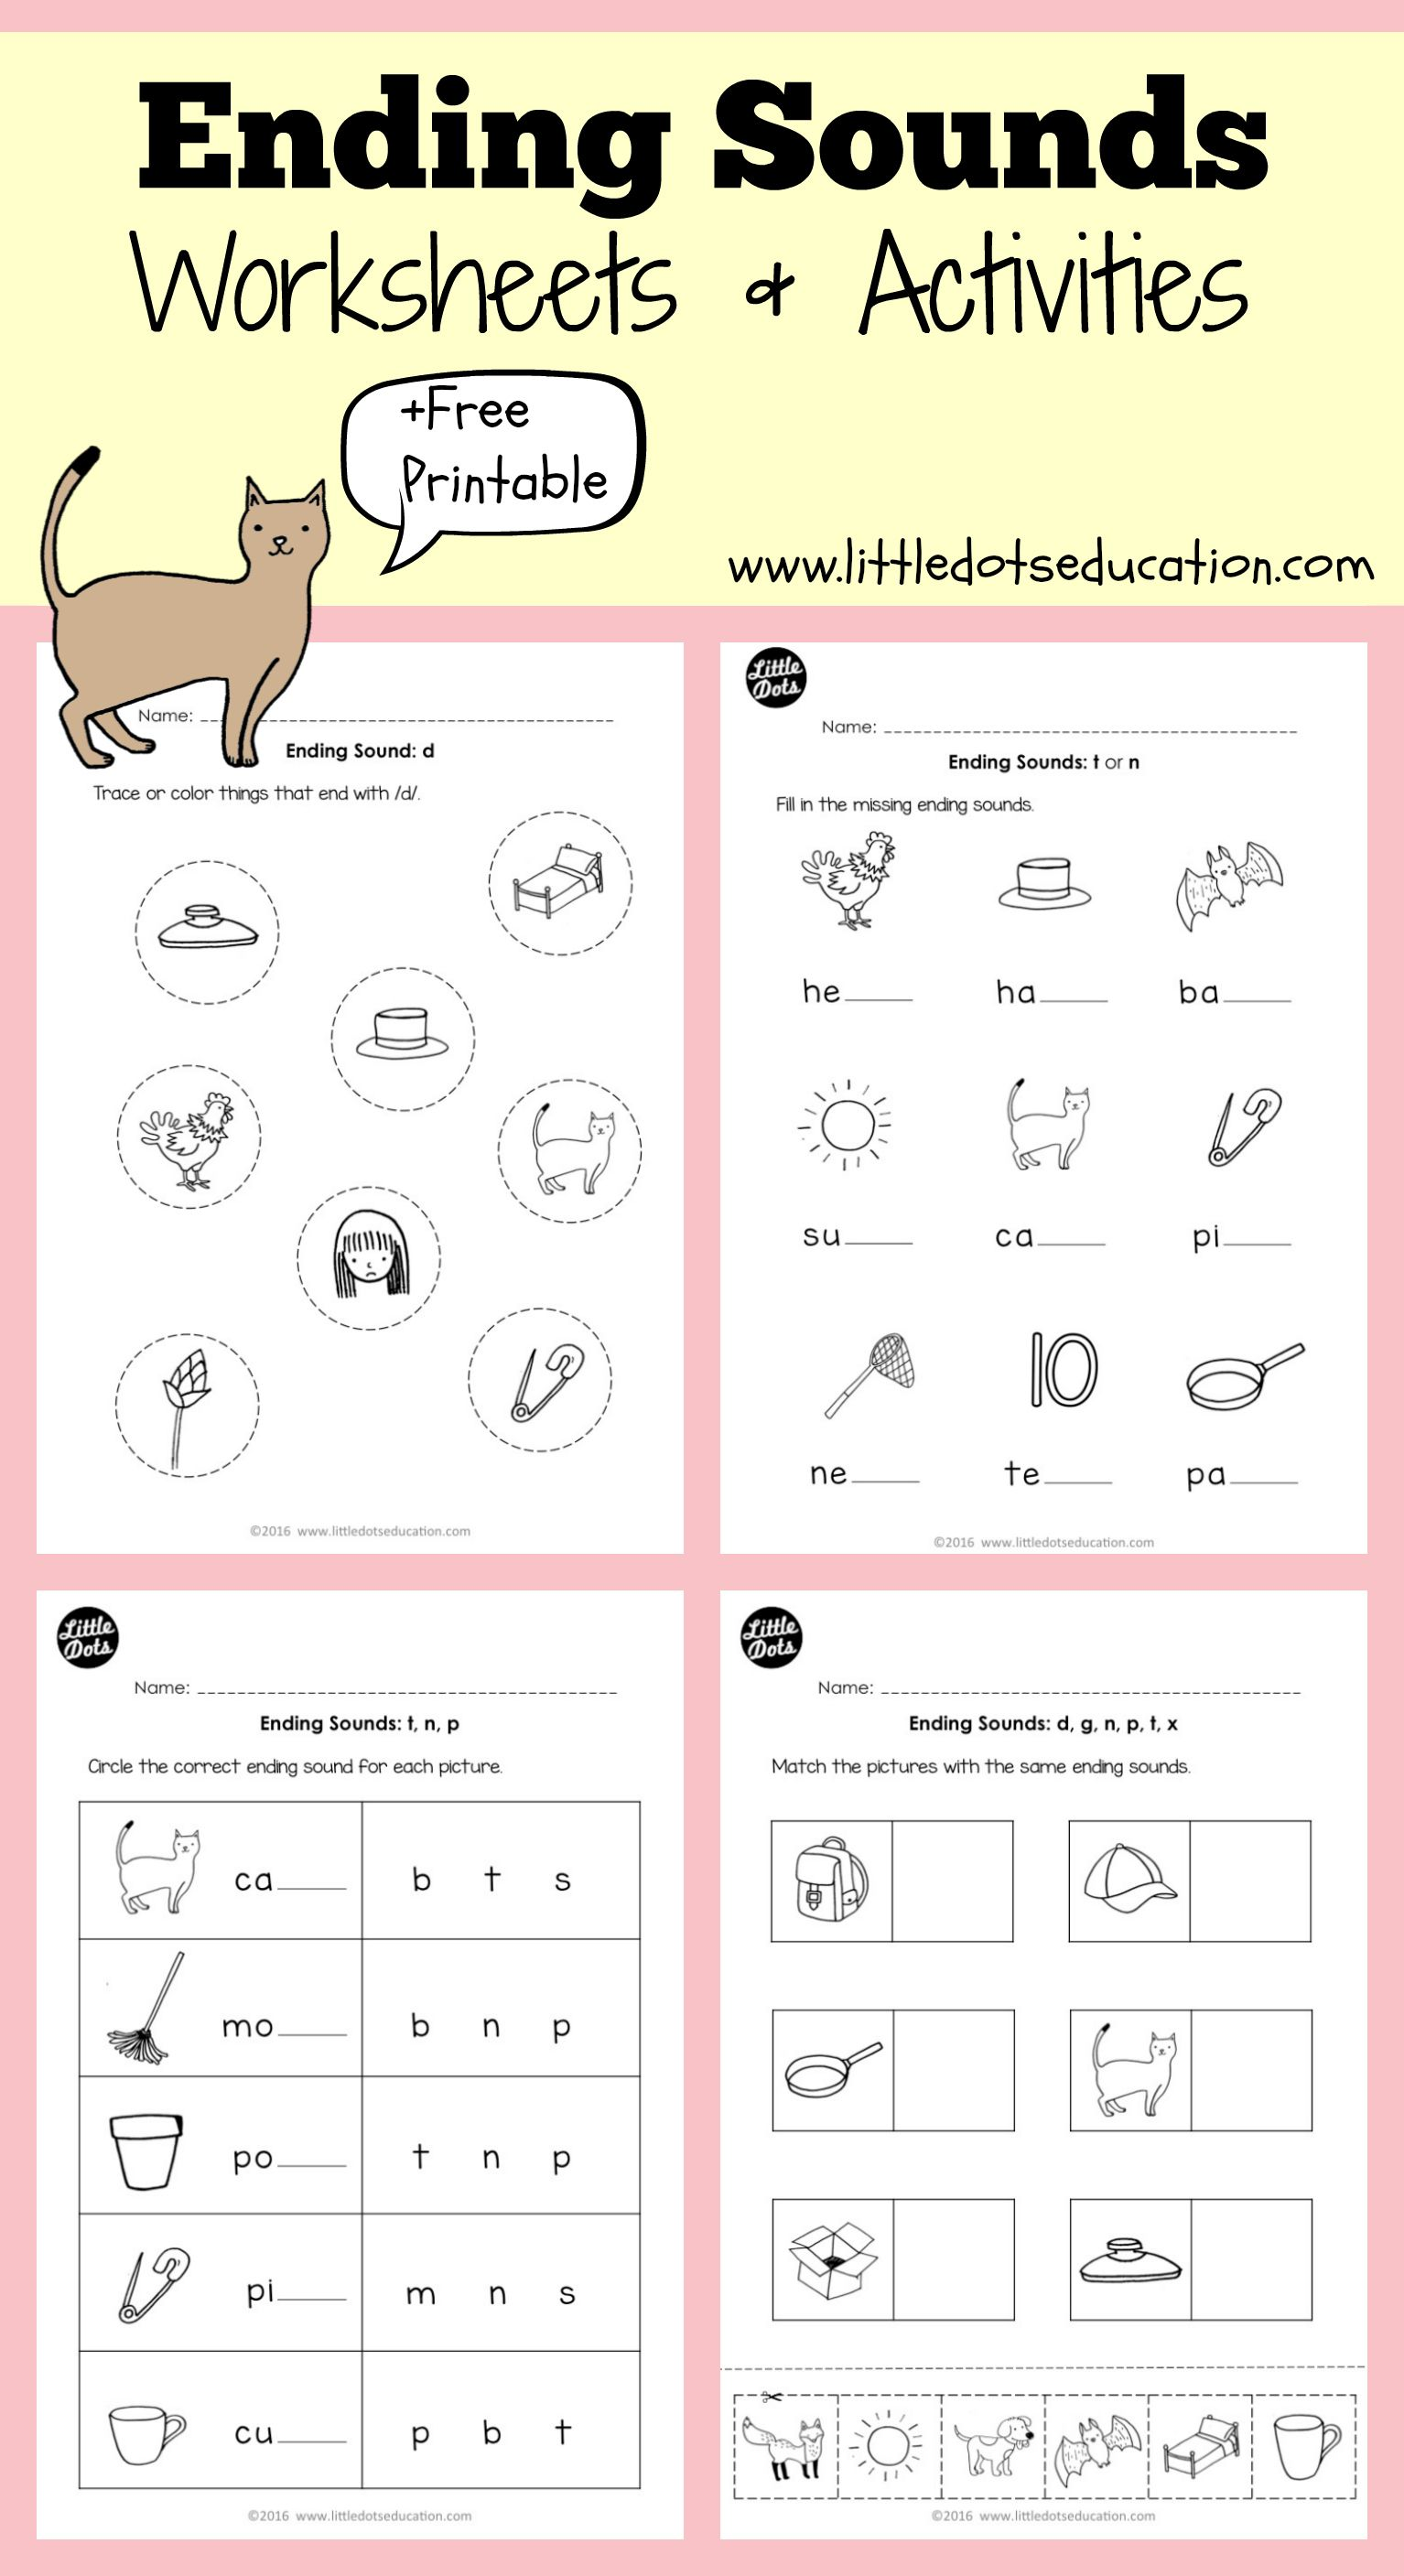 Download ending sounds worksheets and activities for preschool or ...